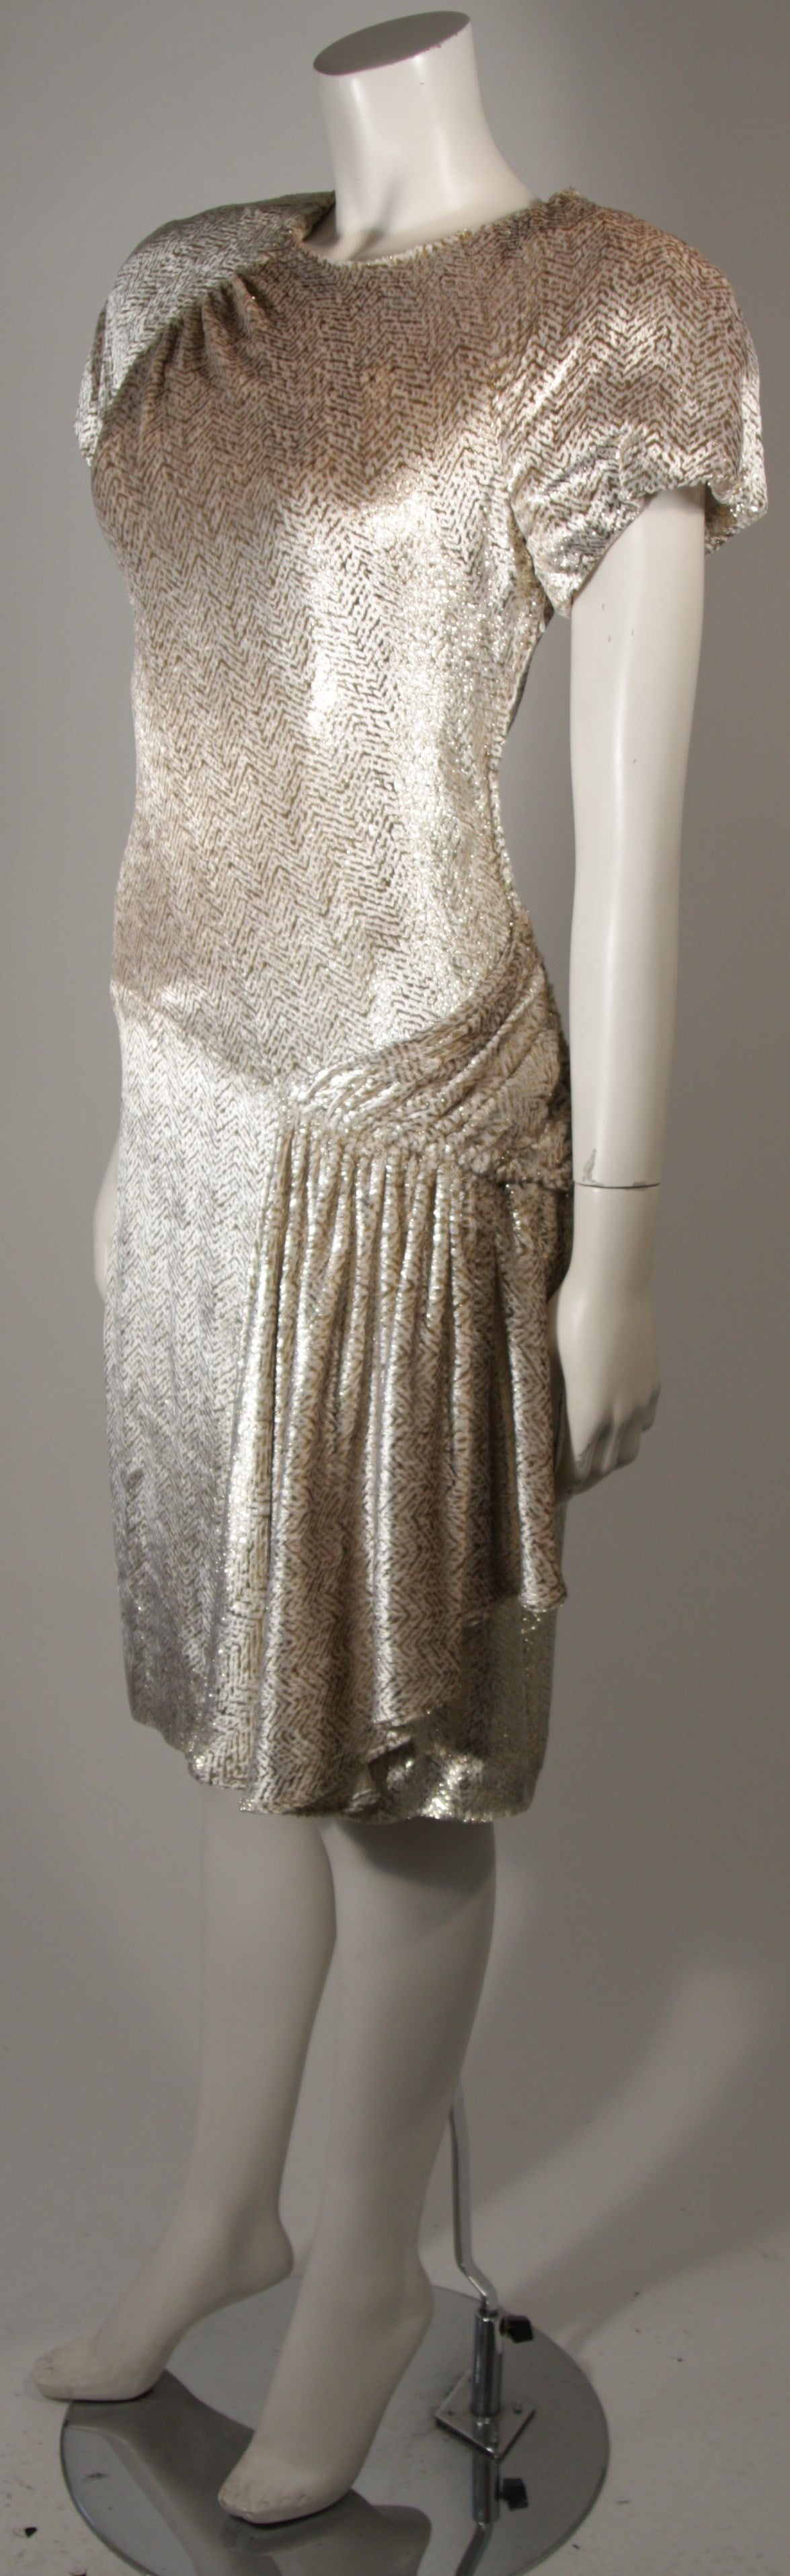 Brown Vicky Tiel Ivory and Gold Velvet Texture Cocktail Dress Size 38 For Sale